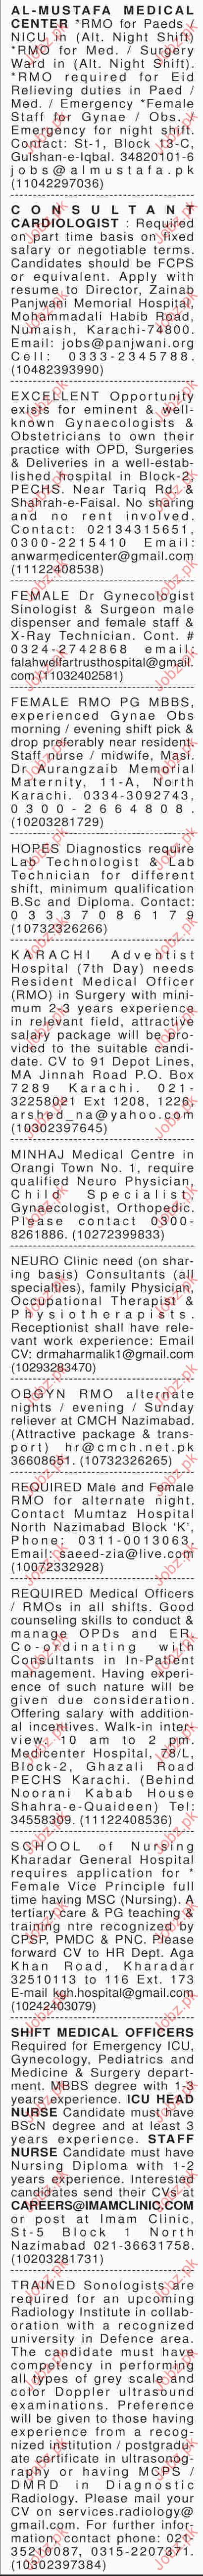 Male and Female Job Opportunity